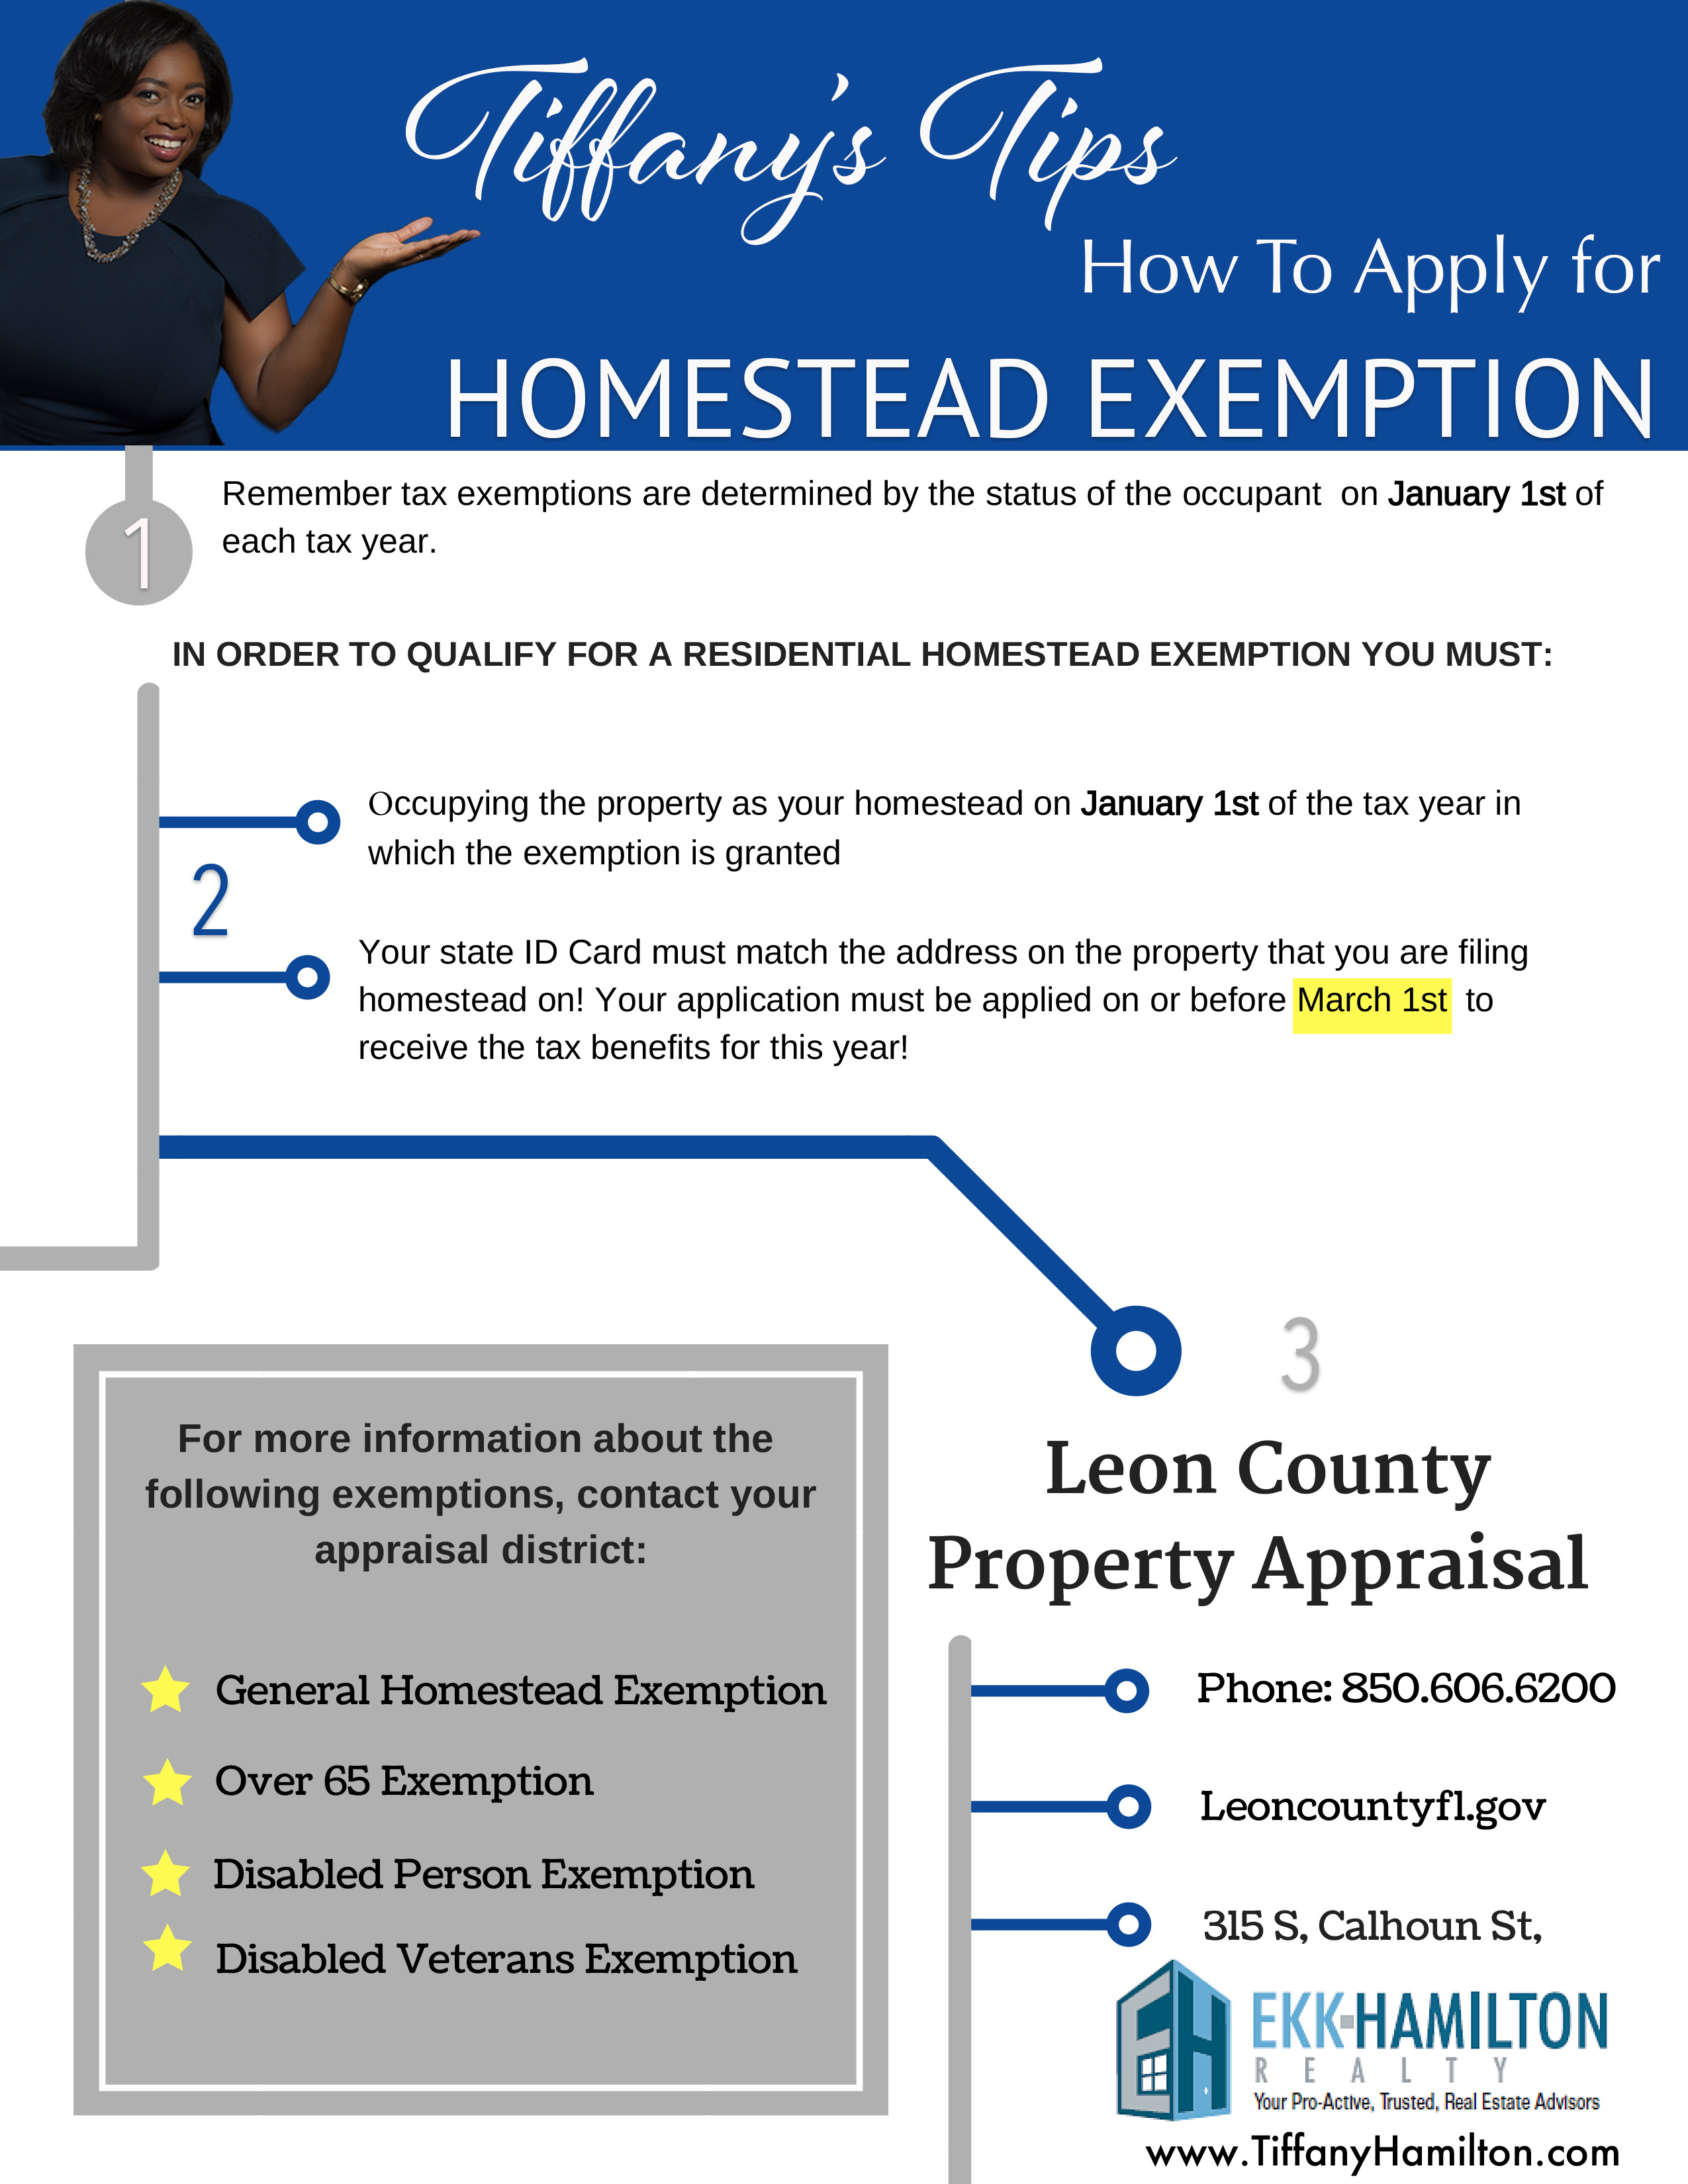 Florida Homestead Exemption Deadline March 1 Don't forget to file. Here is how to